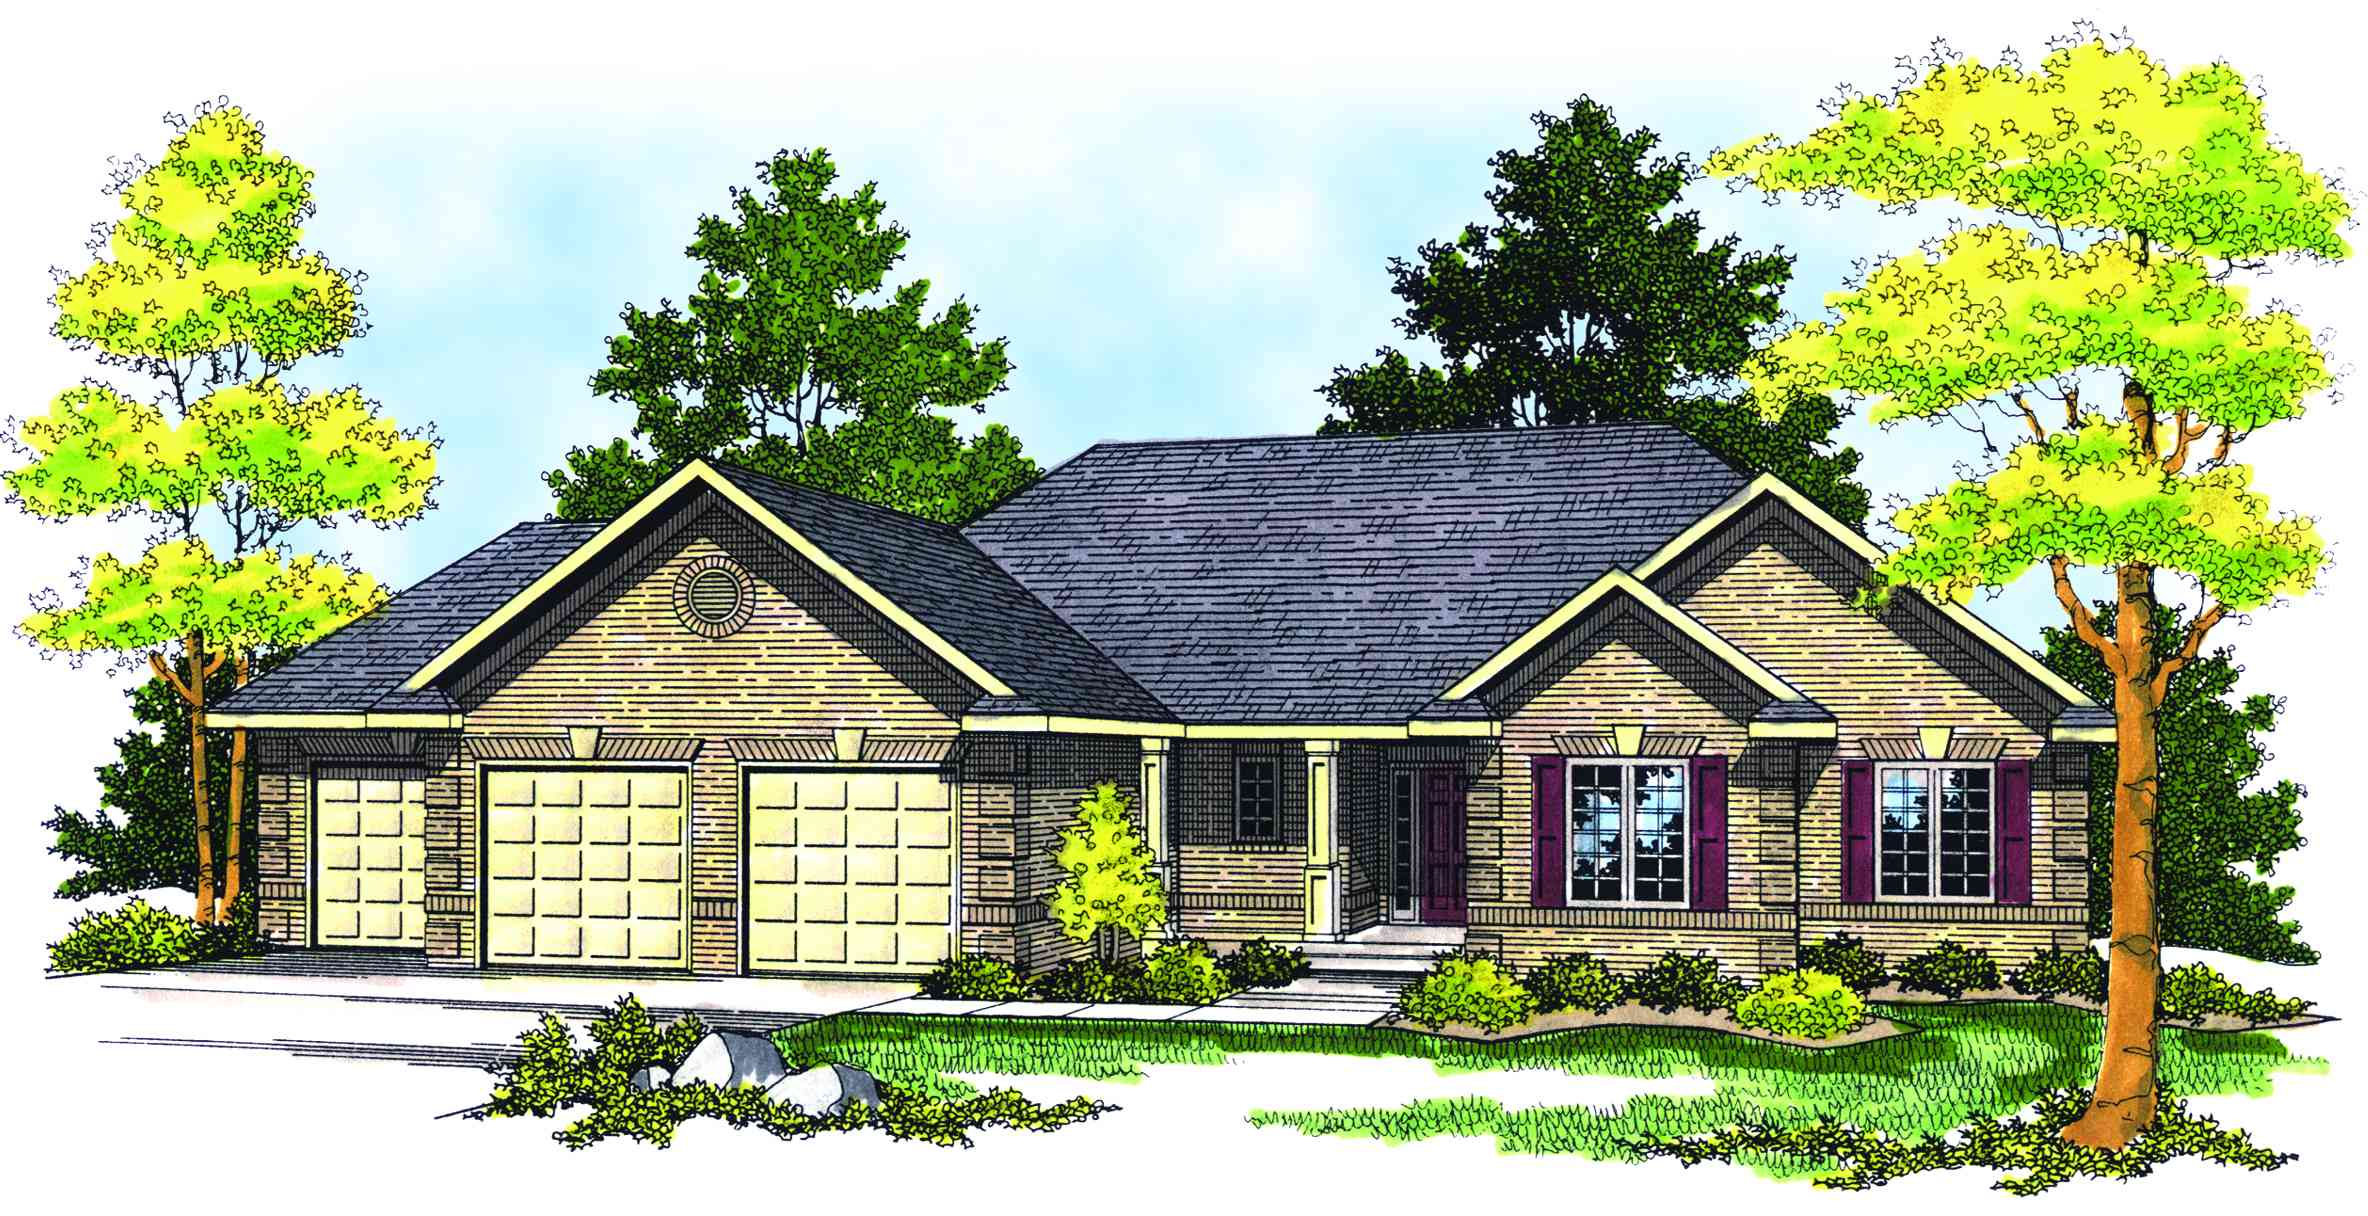 Traditional ranch style home plan 89130ah 1st floor for 3 car garage ranch house plans